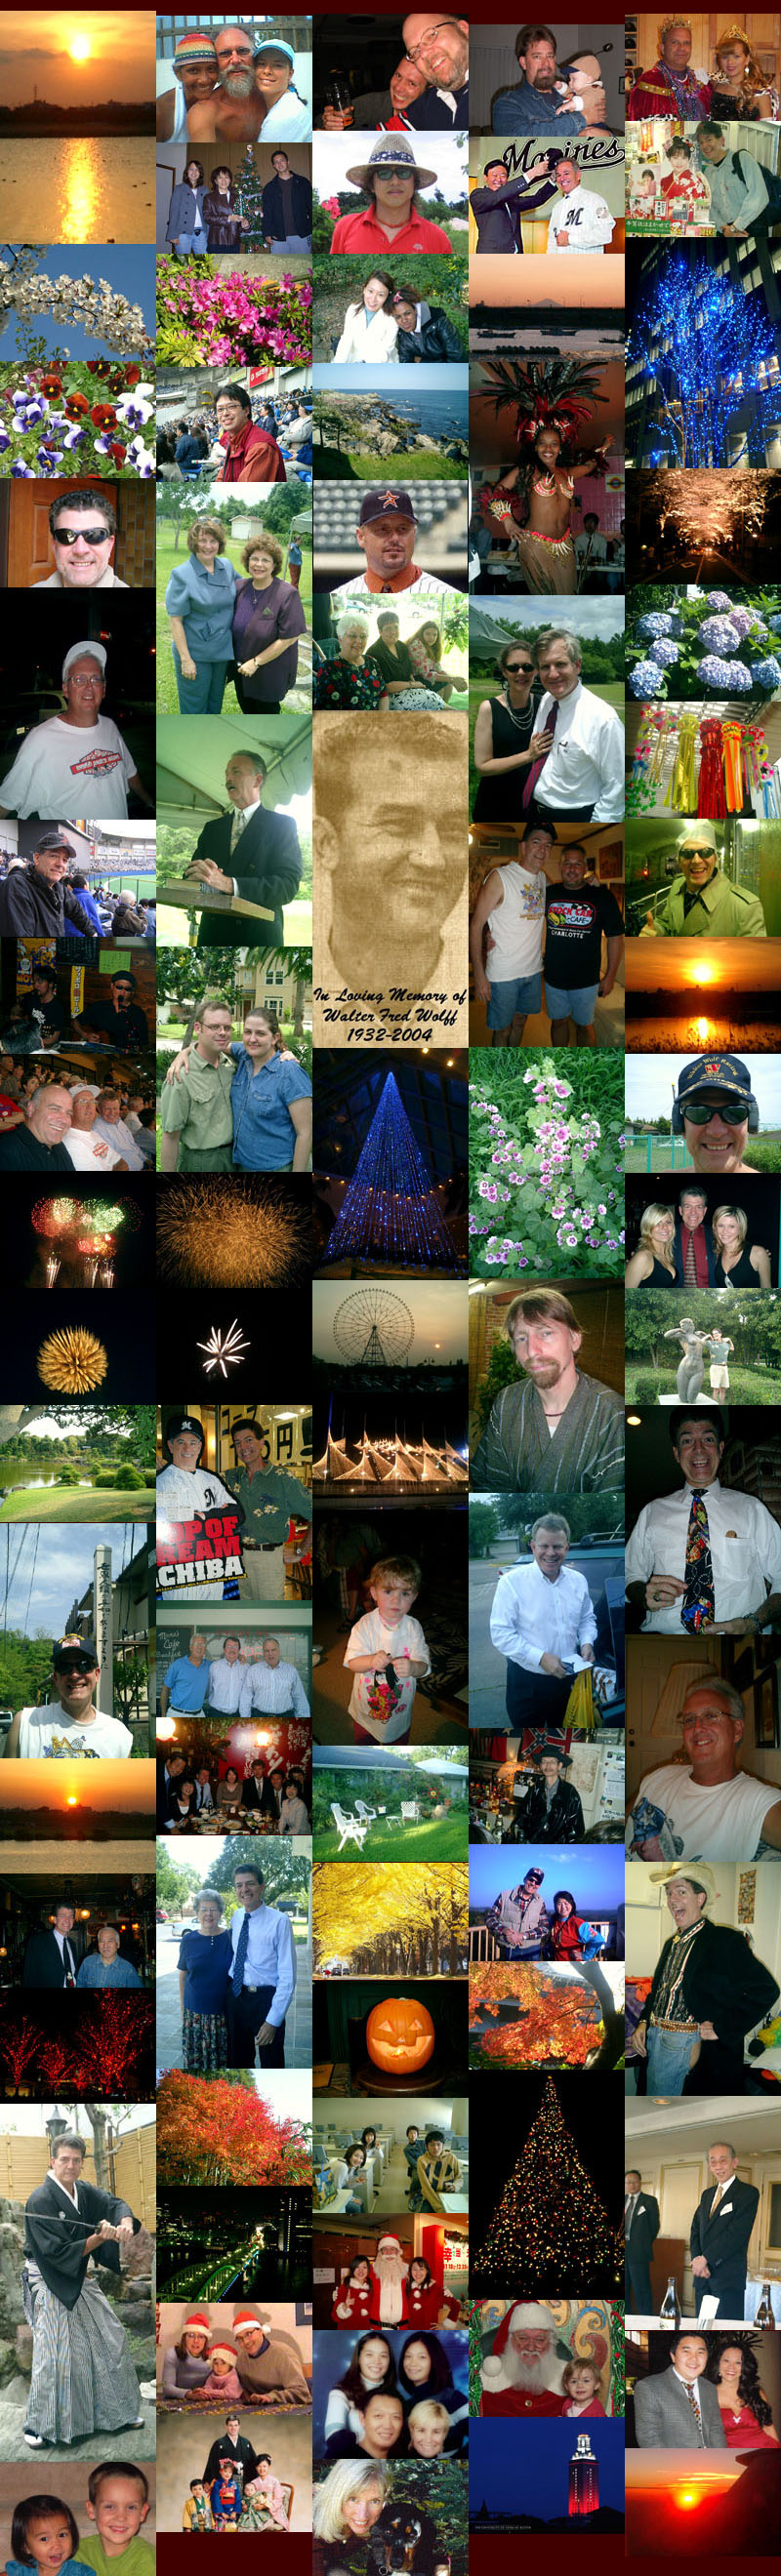 Gary Wolff's 2004 photo collage